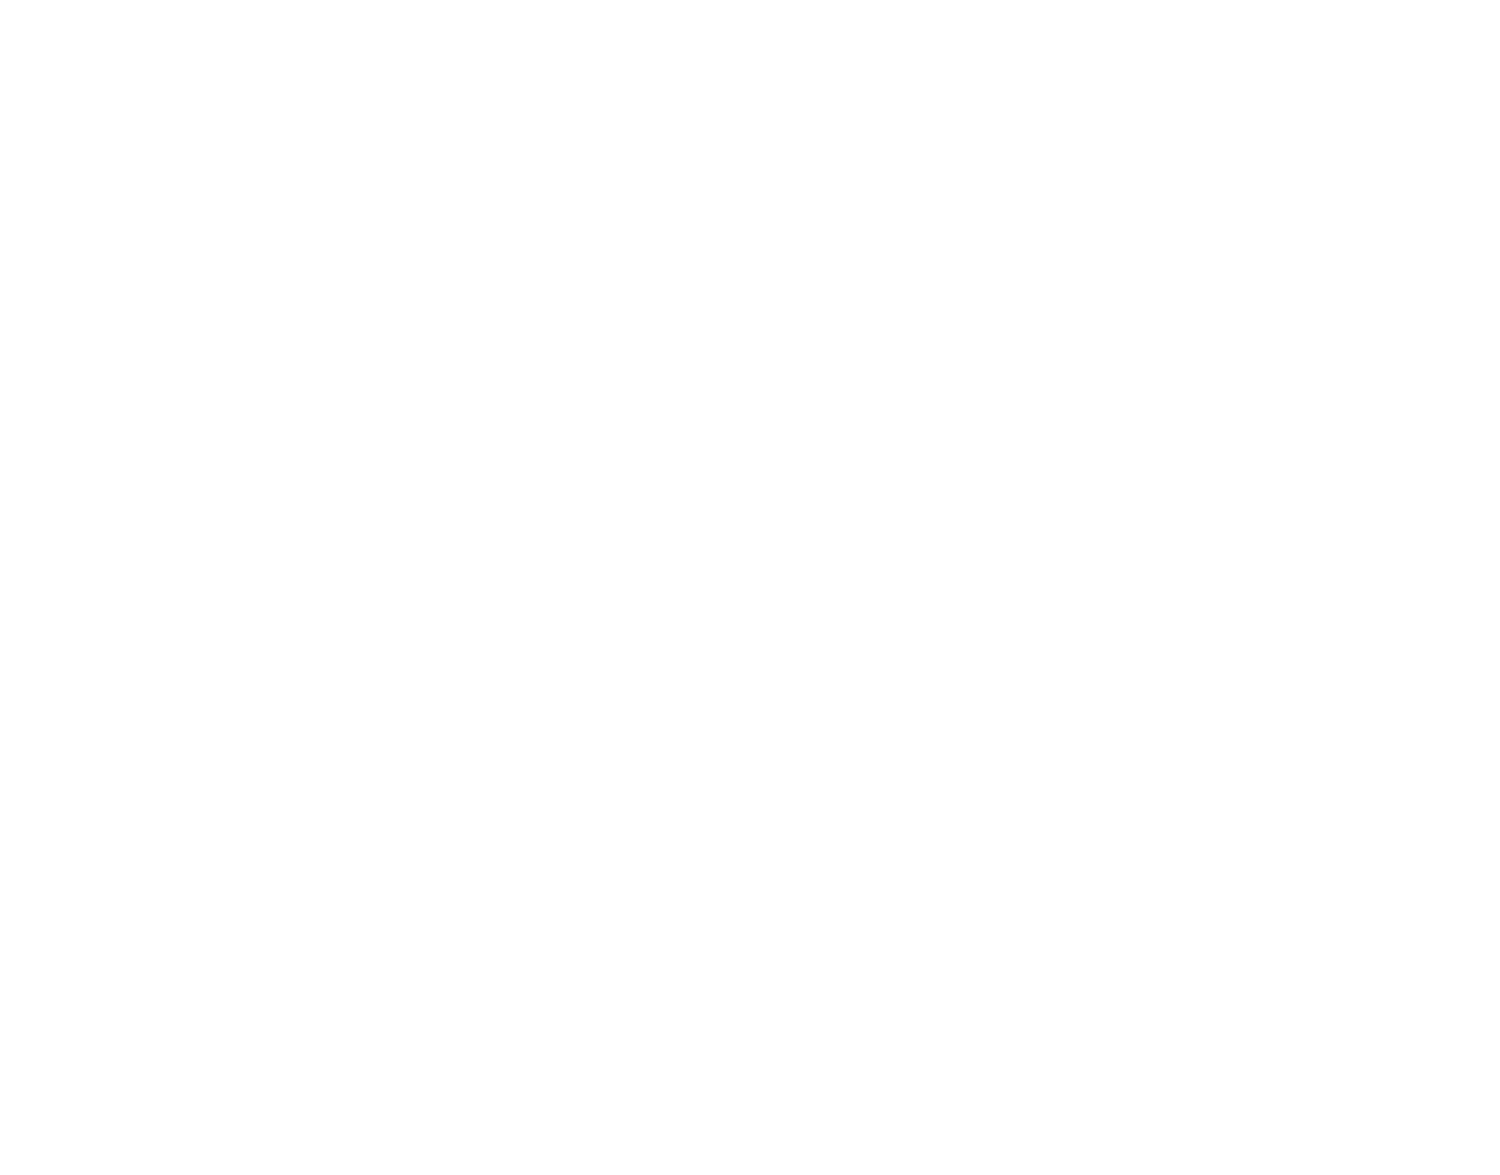 Kindred Nurseries | Award Winning Day Nurseries and Pre-Schools